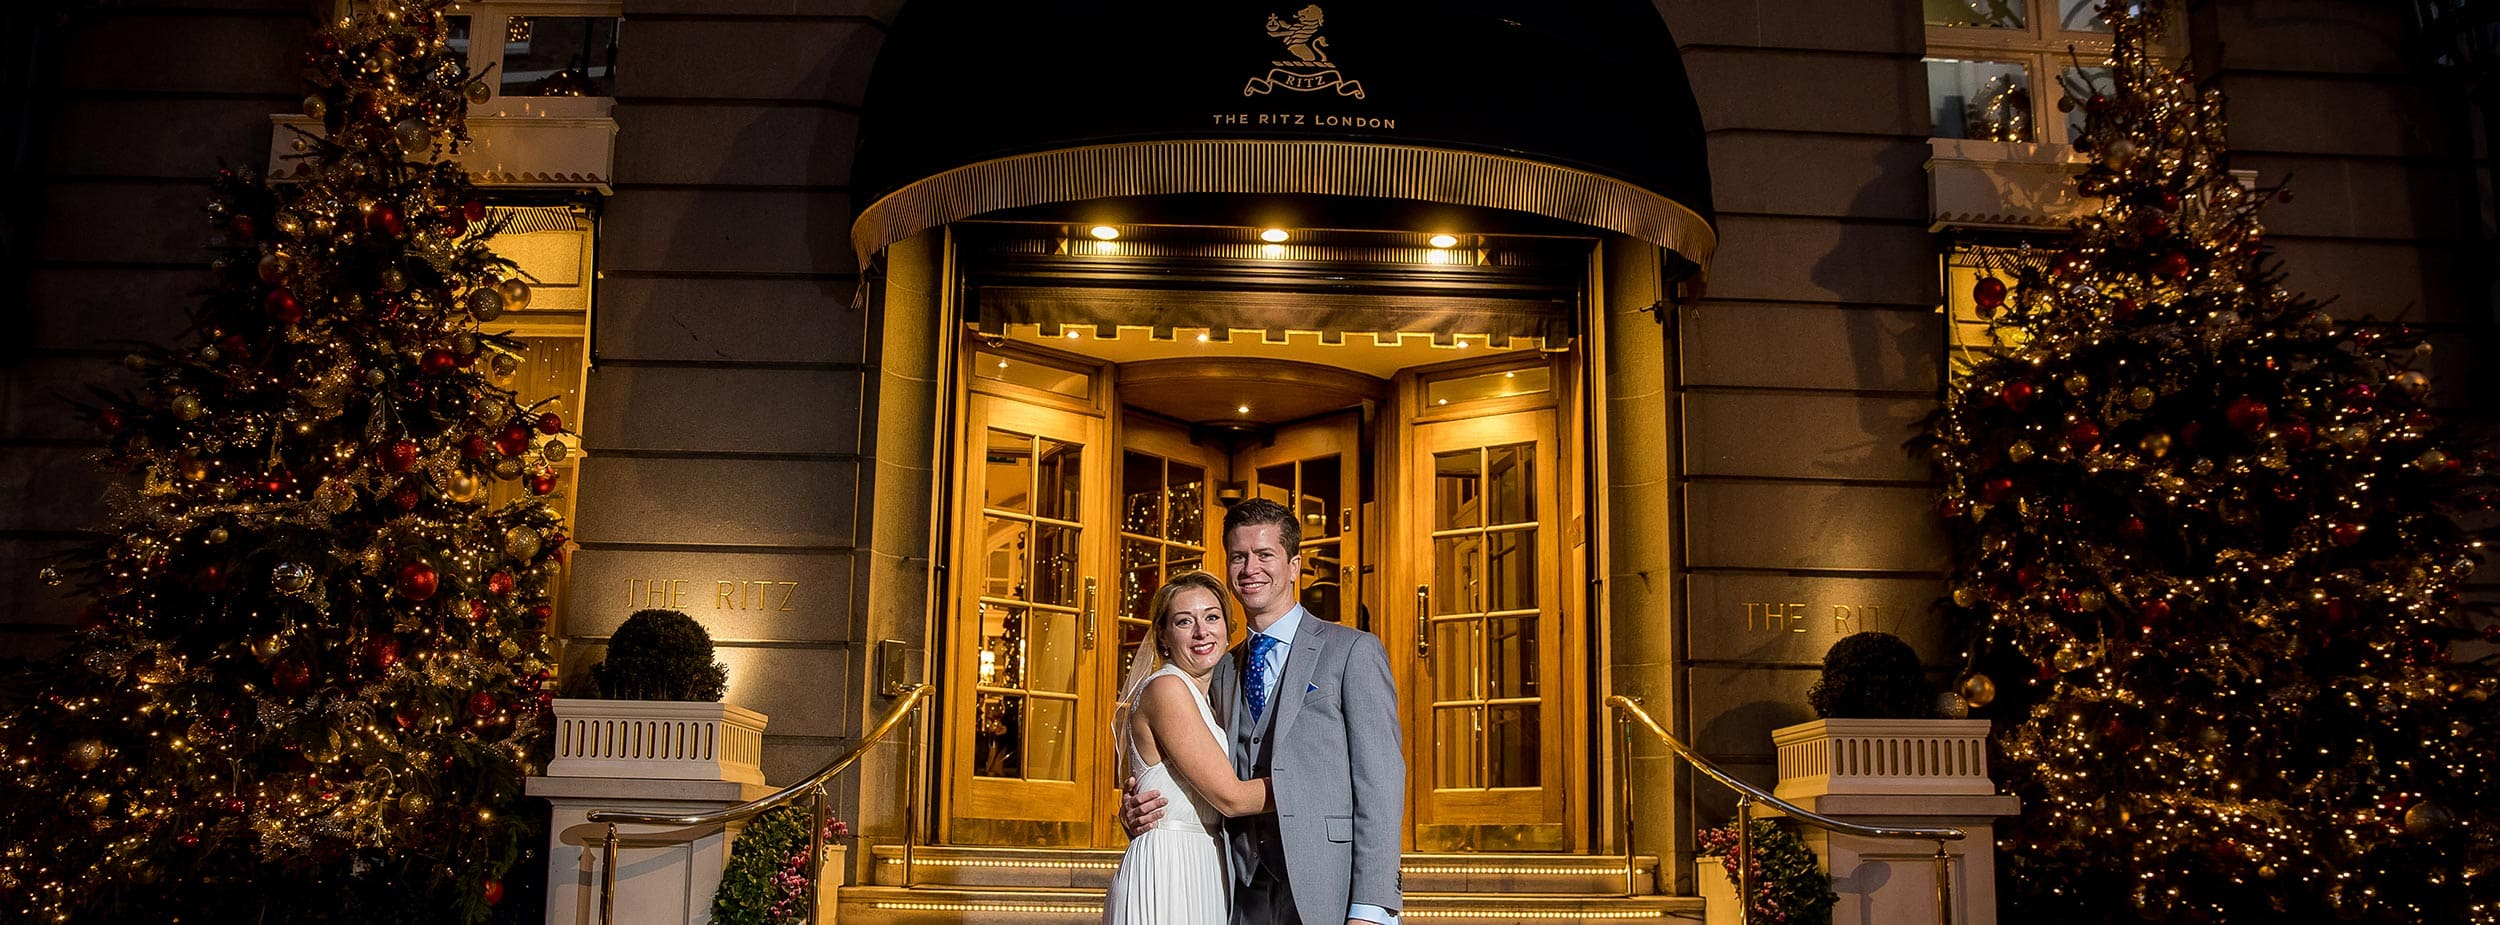 Mayfair Ritz London Wedding Photographer 1